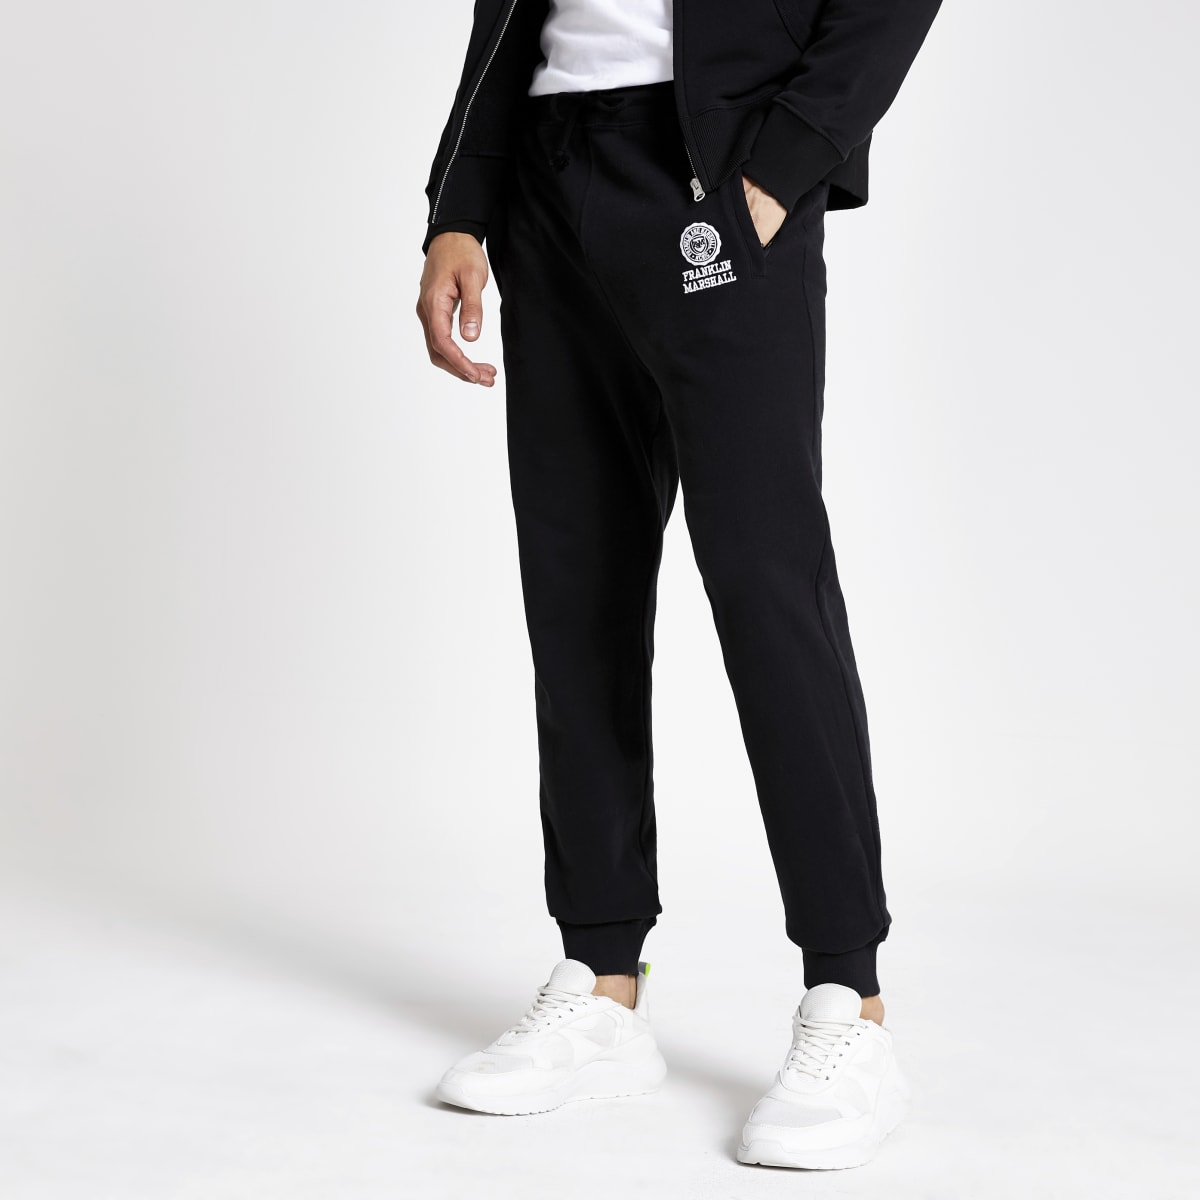 Franklin and Marshall black joggers